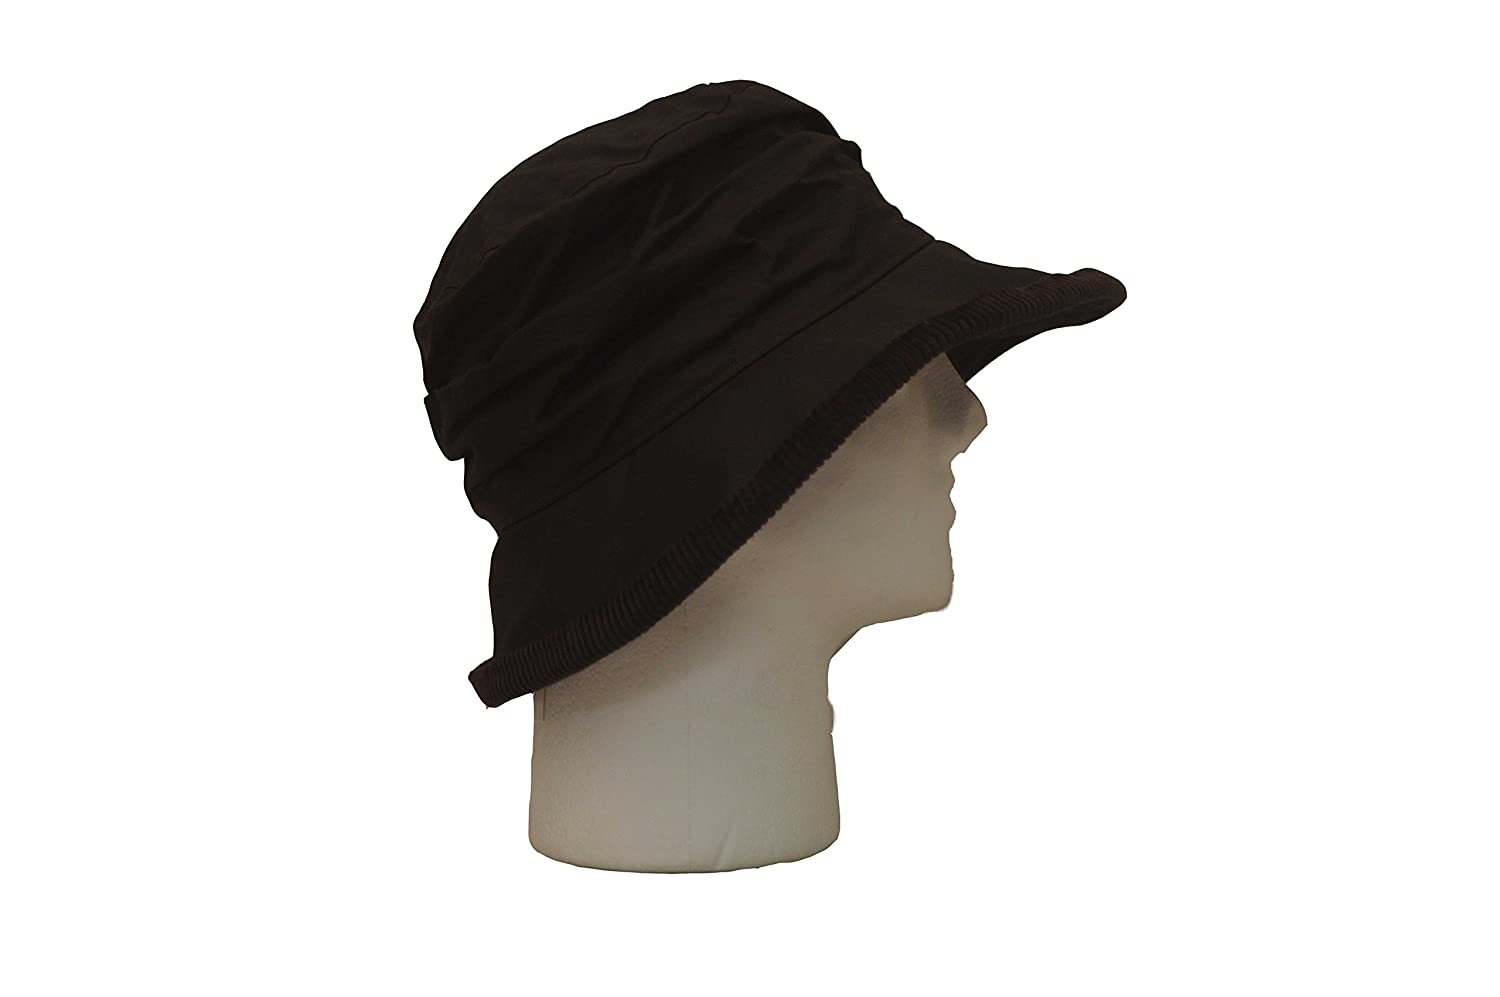 Edwardian Style Hats, Titanic Hats, Derby Hats Walker and Hawkes Womens Wax Diana Country Hat $25.42 AT vintagedancer.com